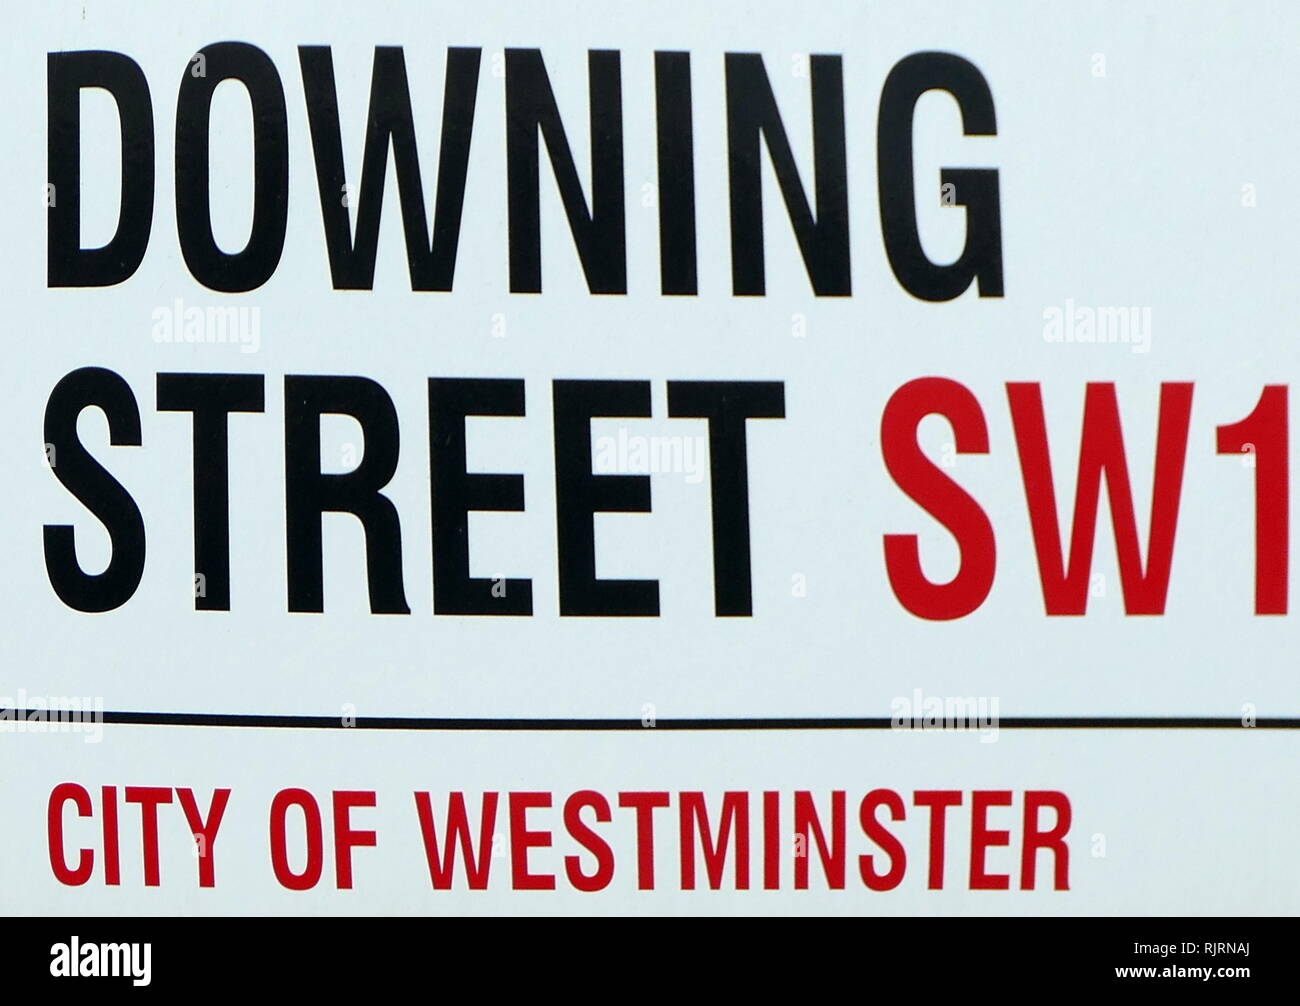 Downing Street is a street in London, United Kingdom, known for housing the official residences and offices of the Prime Minister and the Chancellor of the Exchequer. The street was built in the 1680s by Sir George Downing. - Stock Image